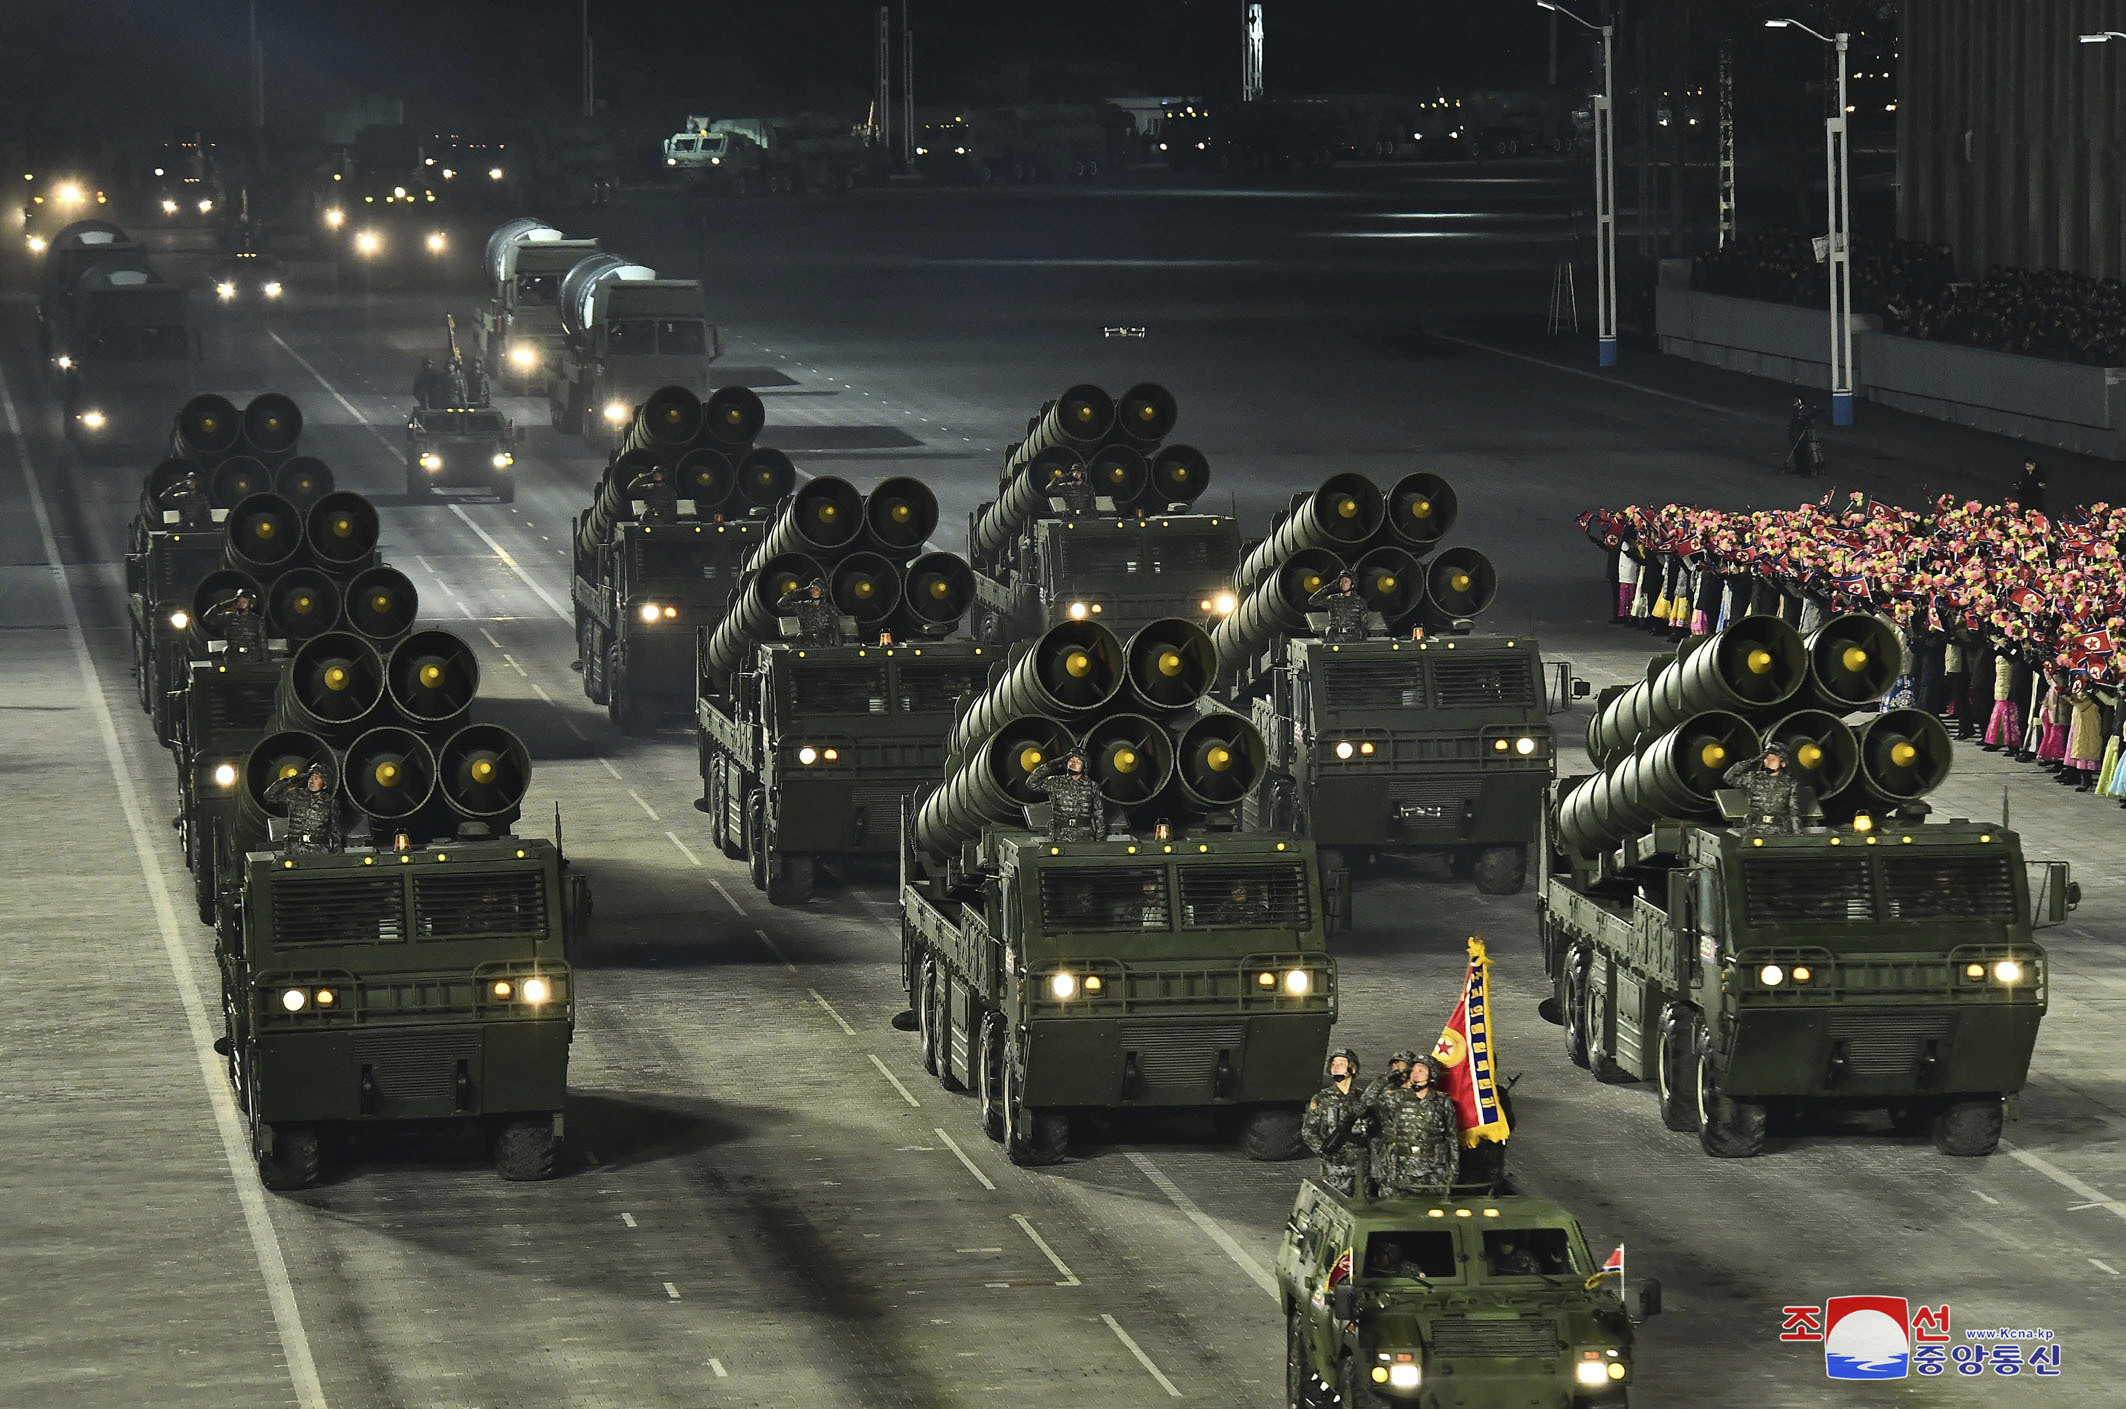 North Korea showed off weapons during a Jan. 14, 2021, parade in the capital. (Korean Central News Agency/Korea News Service via AP)